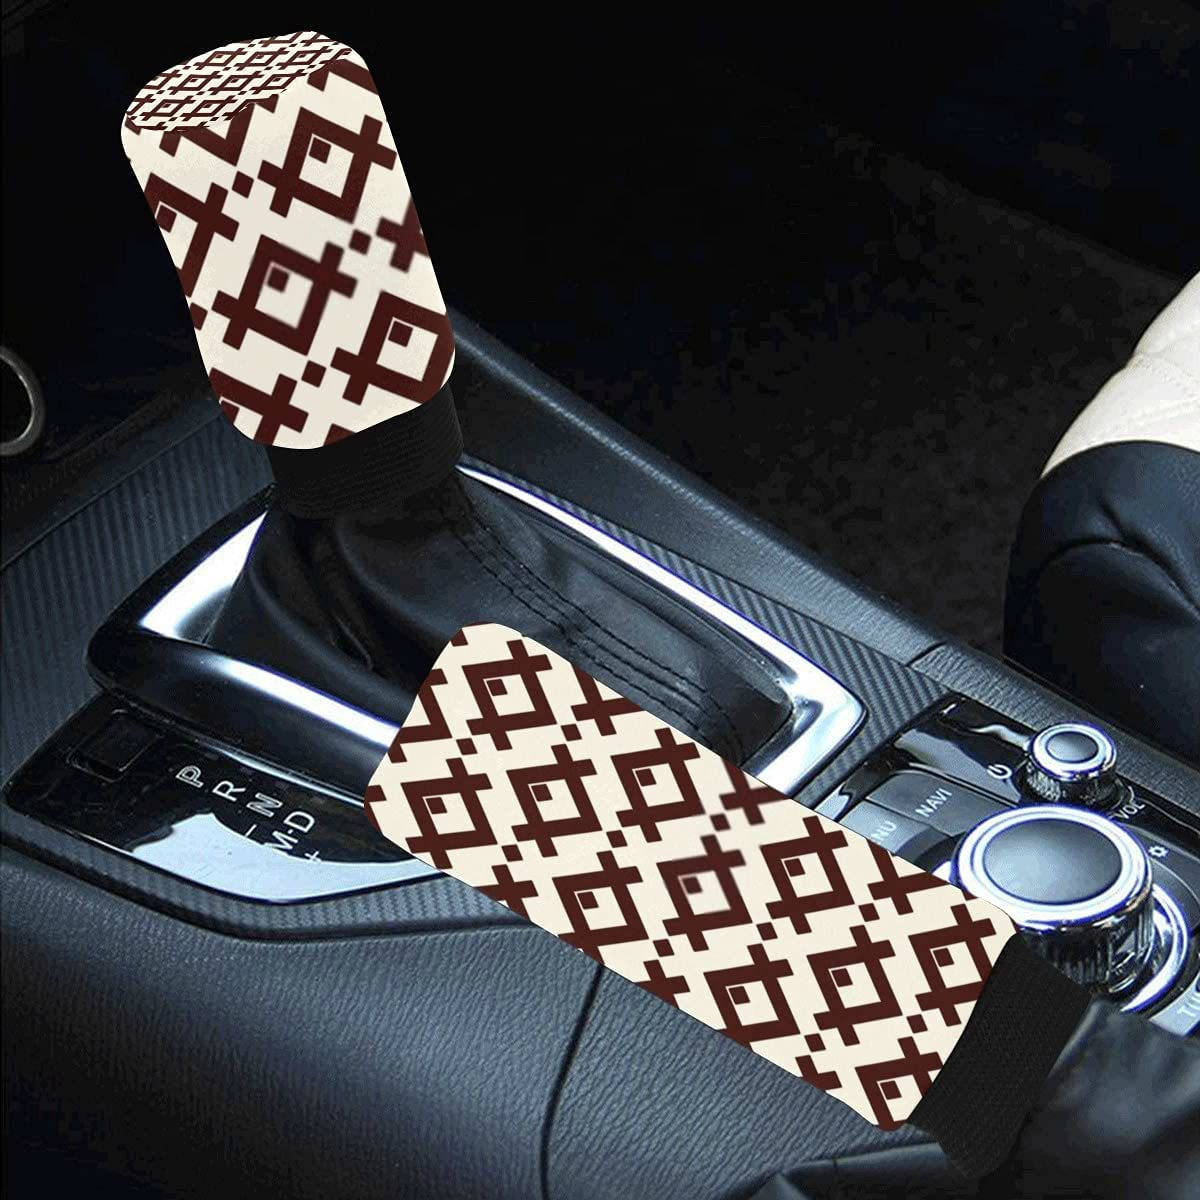 Car Interior Accessiores Low price for Limited time for free shipping Women Men -auto Cov Shift Knob Gear